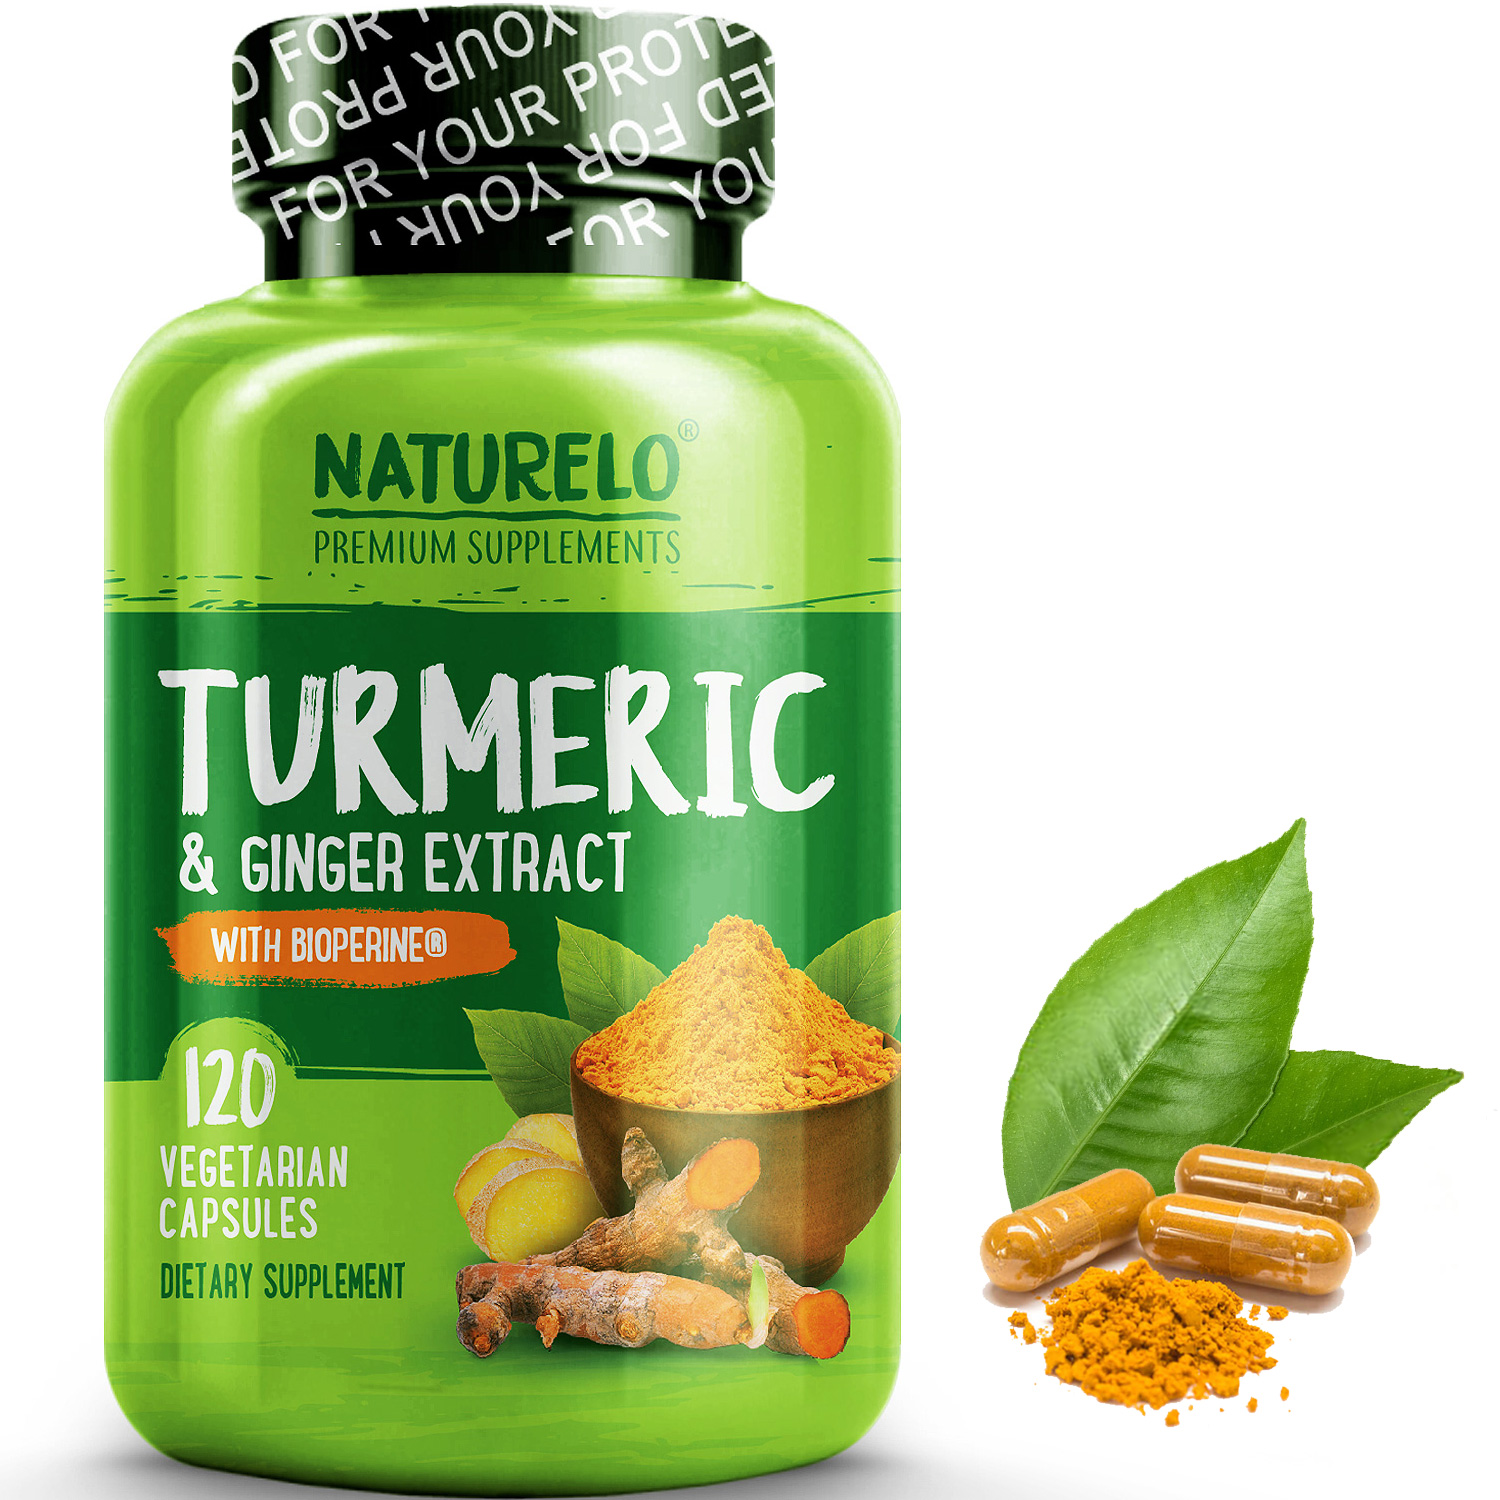 Turmeric Powder with Ginger Extract - Added BioPerine for Better Absorption - 120 Capsules